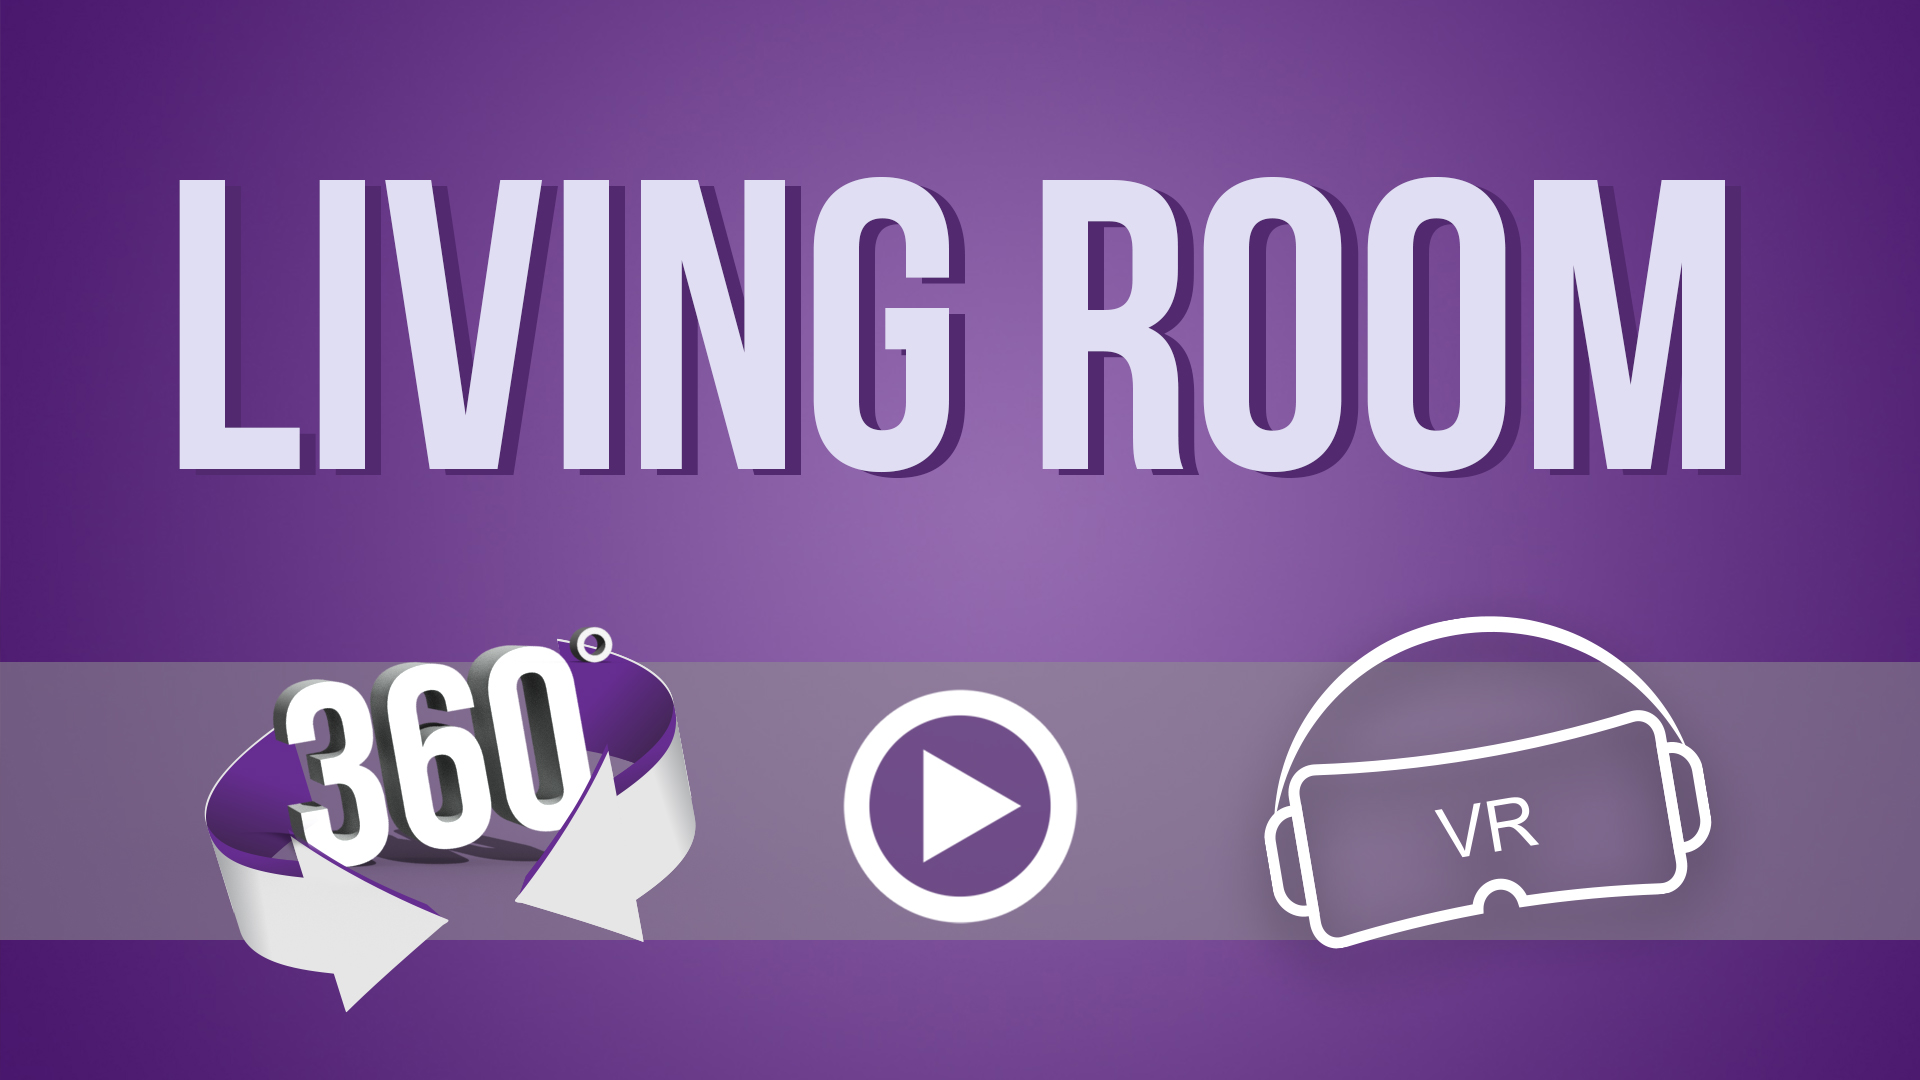 Living Room thumb VR